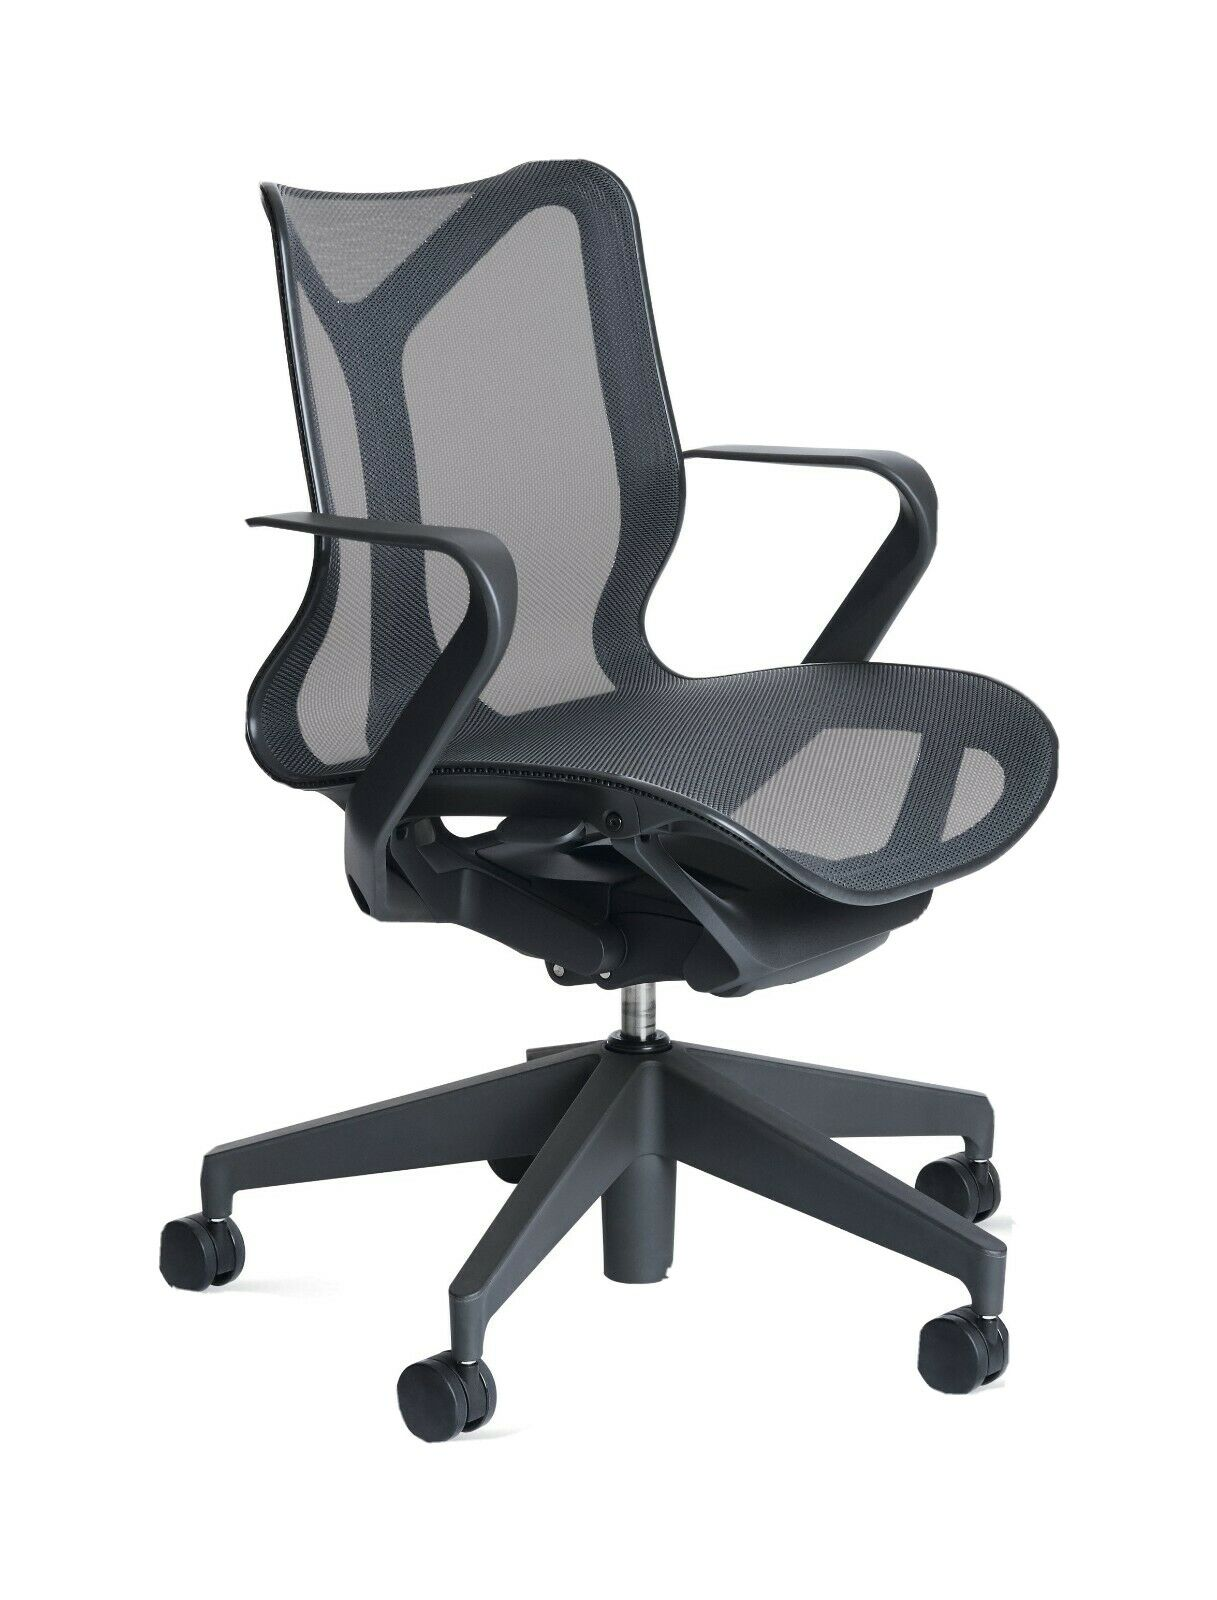 Authentic Herman Miller® Cosm™ Chair, Low Back mesh office modern desk chair